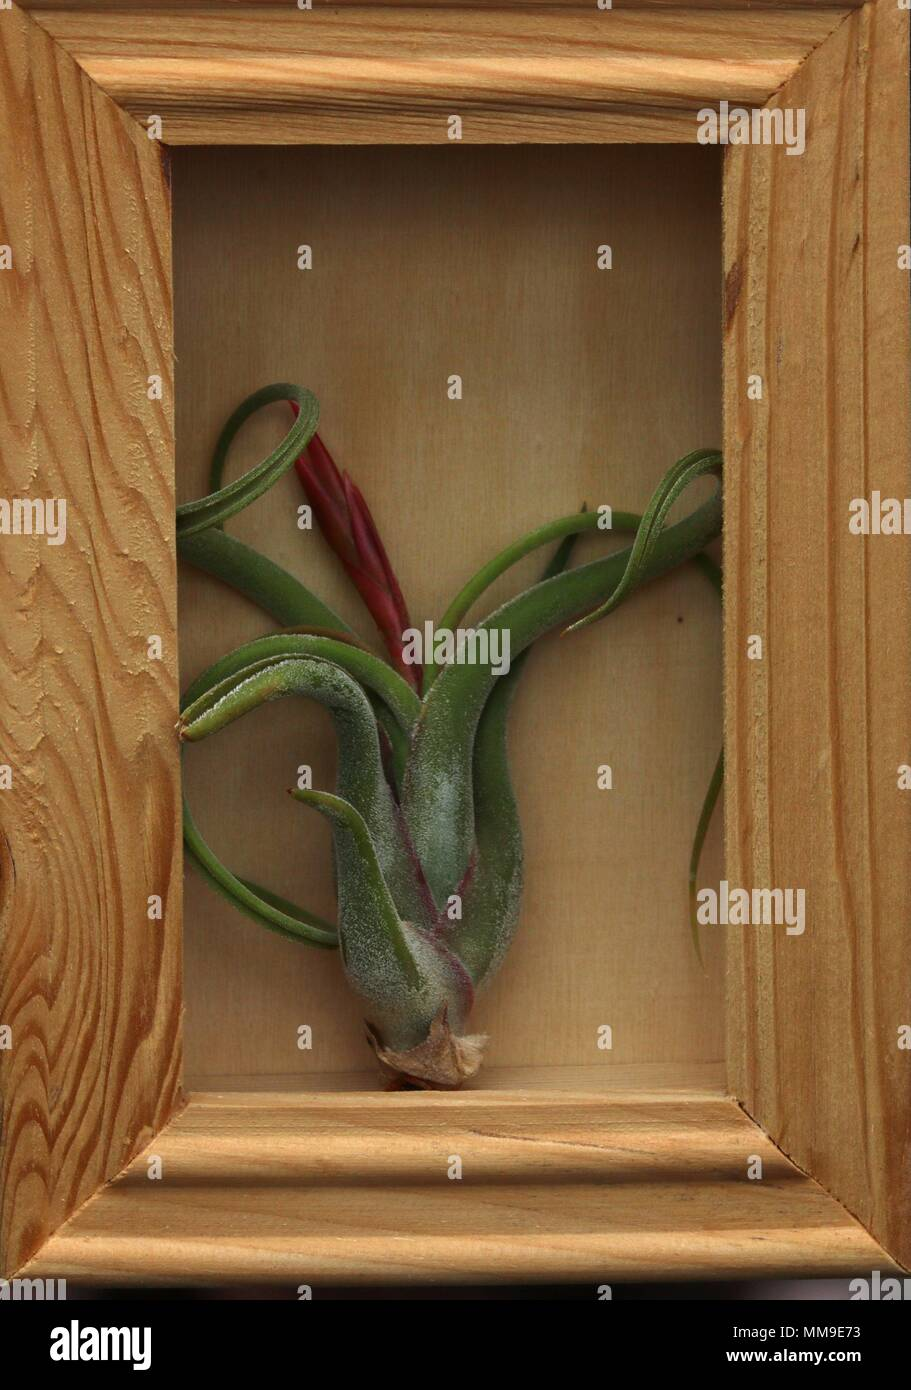 Medusa Air Plant in wood shadow box - Stock Image